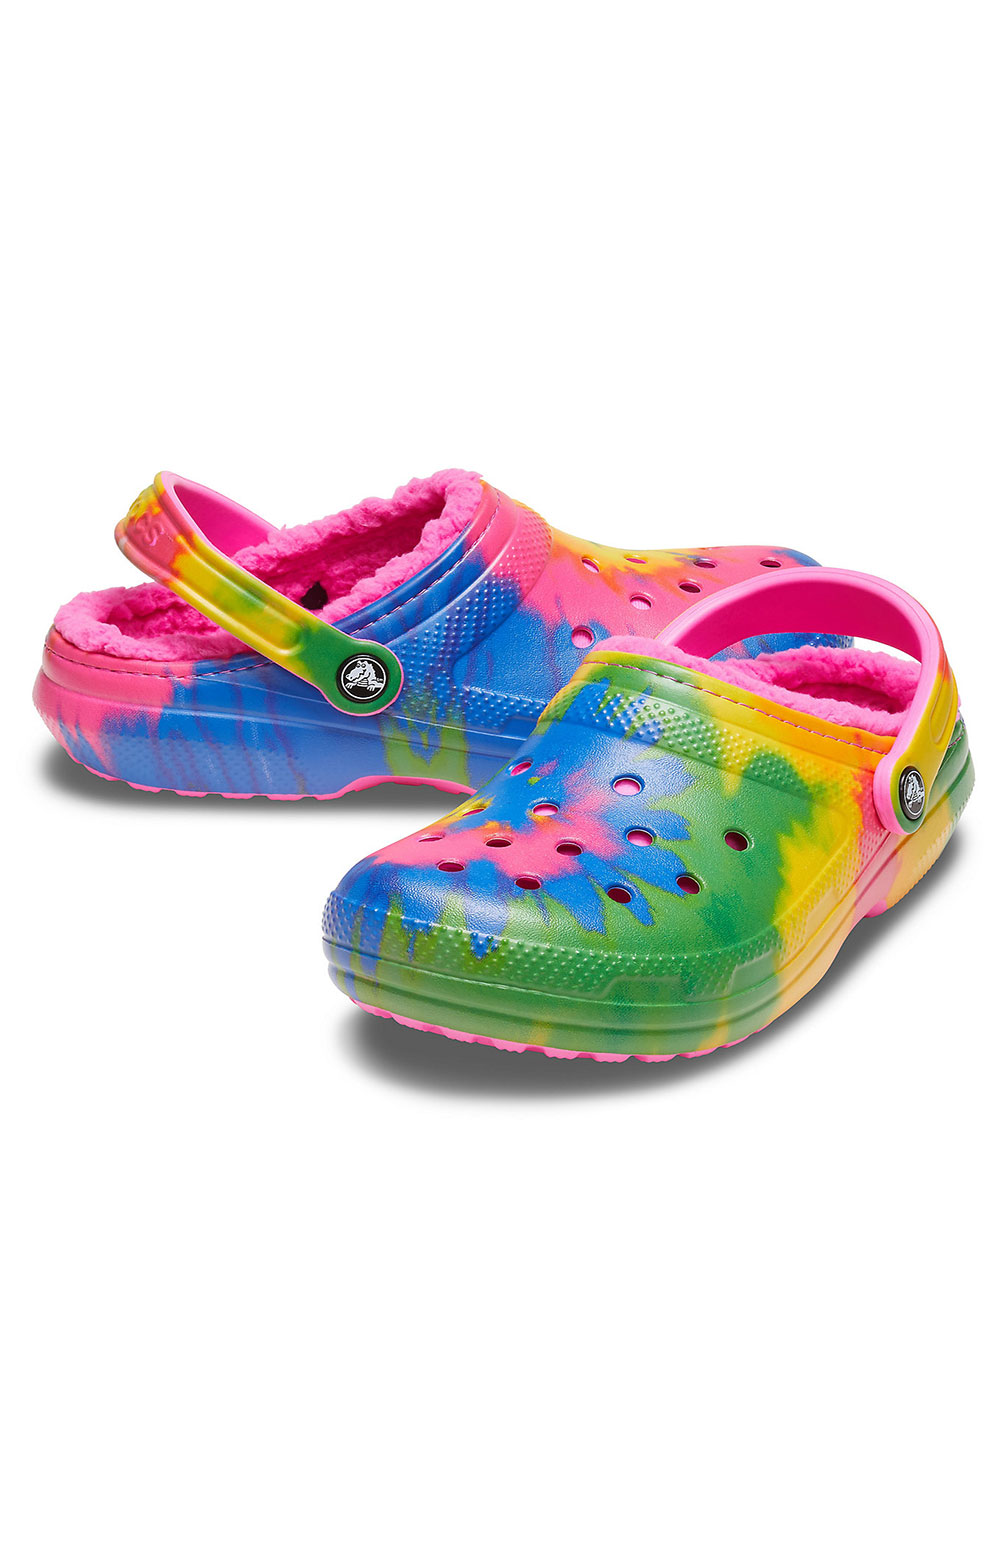 Classic Lined Tie-Dye Clogs - Electric Pink/Multi 3